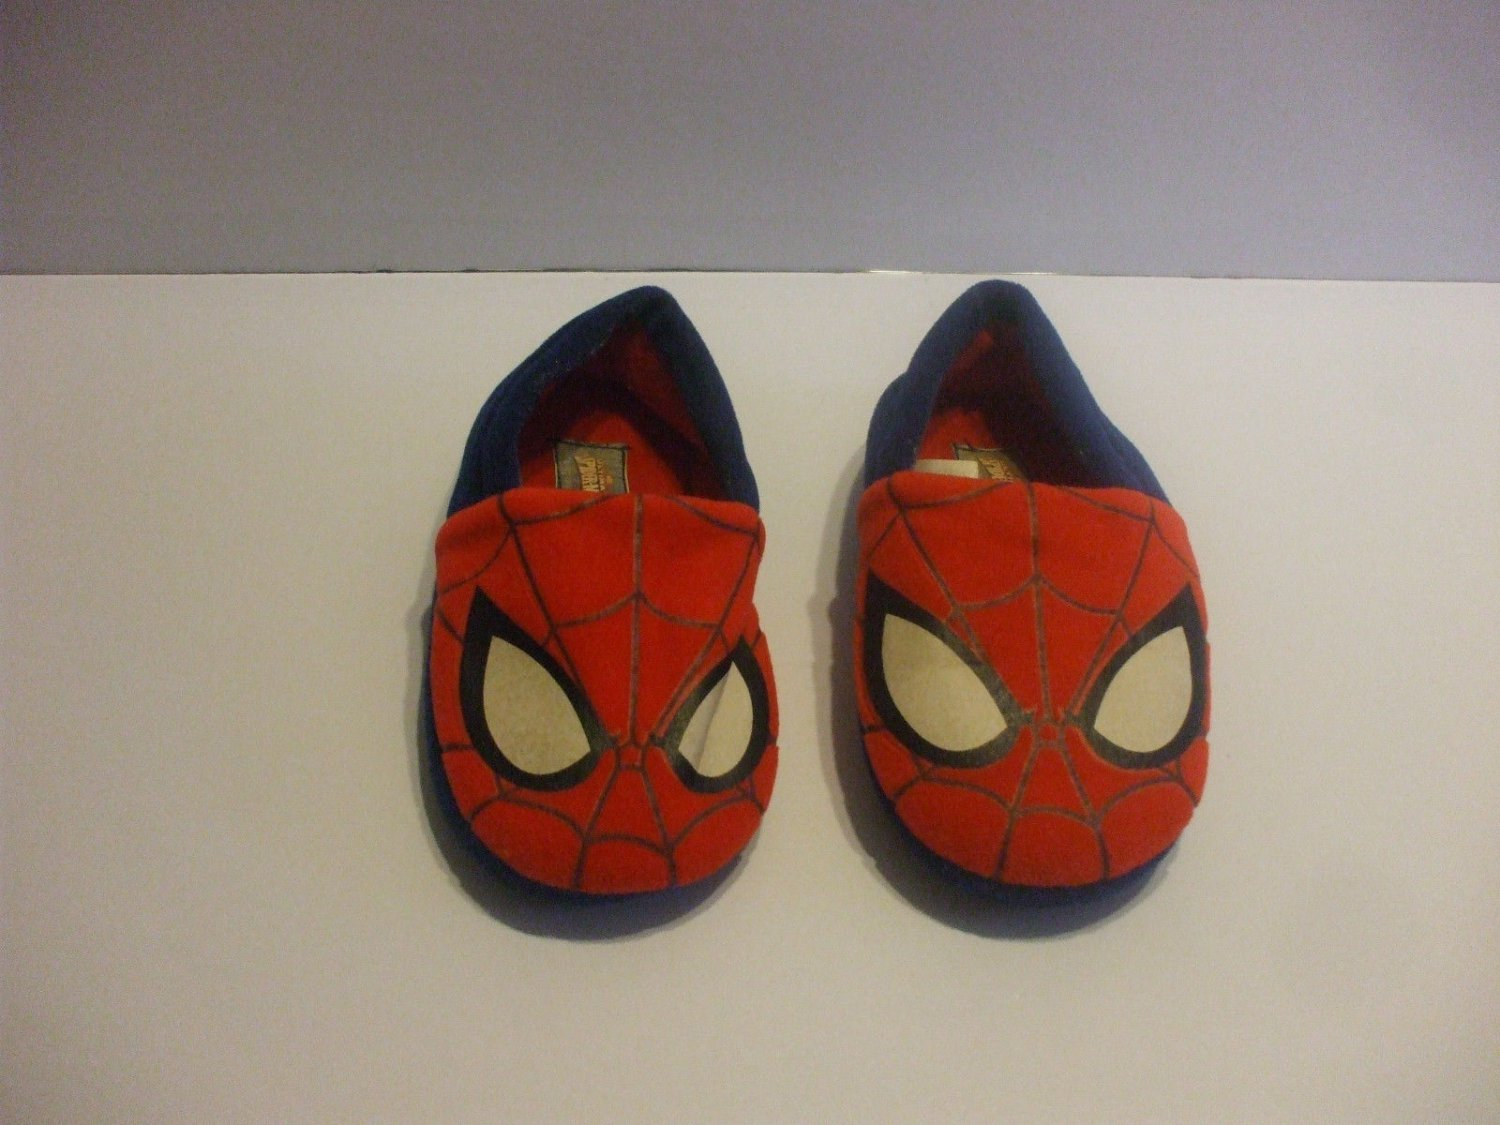 Red & Blue Spiderman Slippers Size 11/12 Toddlers 3-4 years Old